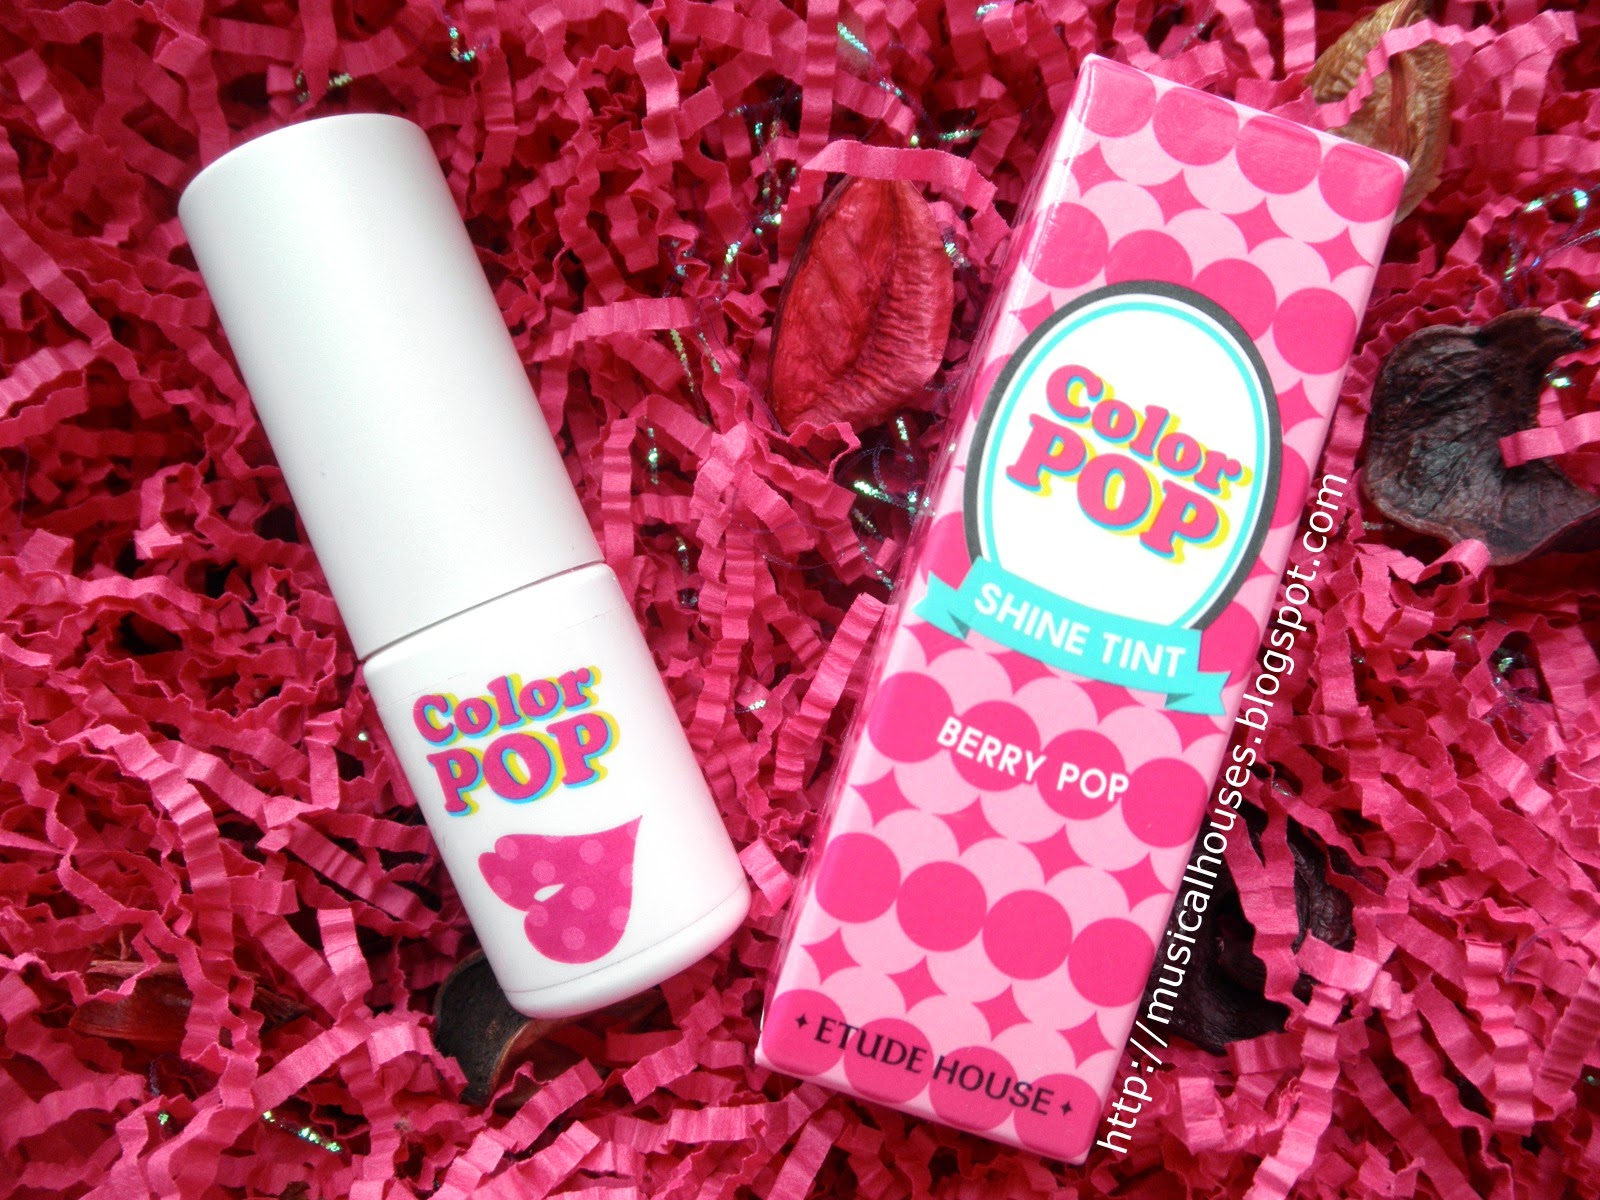 Etude House Color Pop Lip Tint Review and Swatches: #08 Berry Pop ...